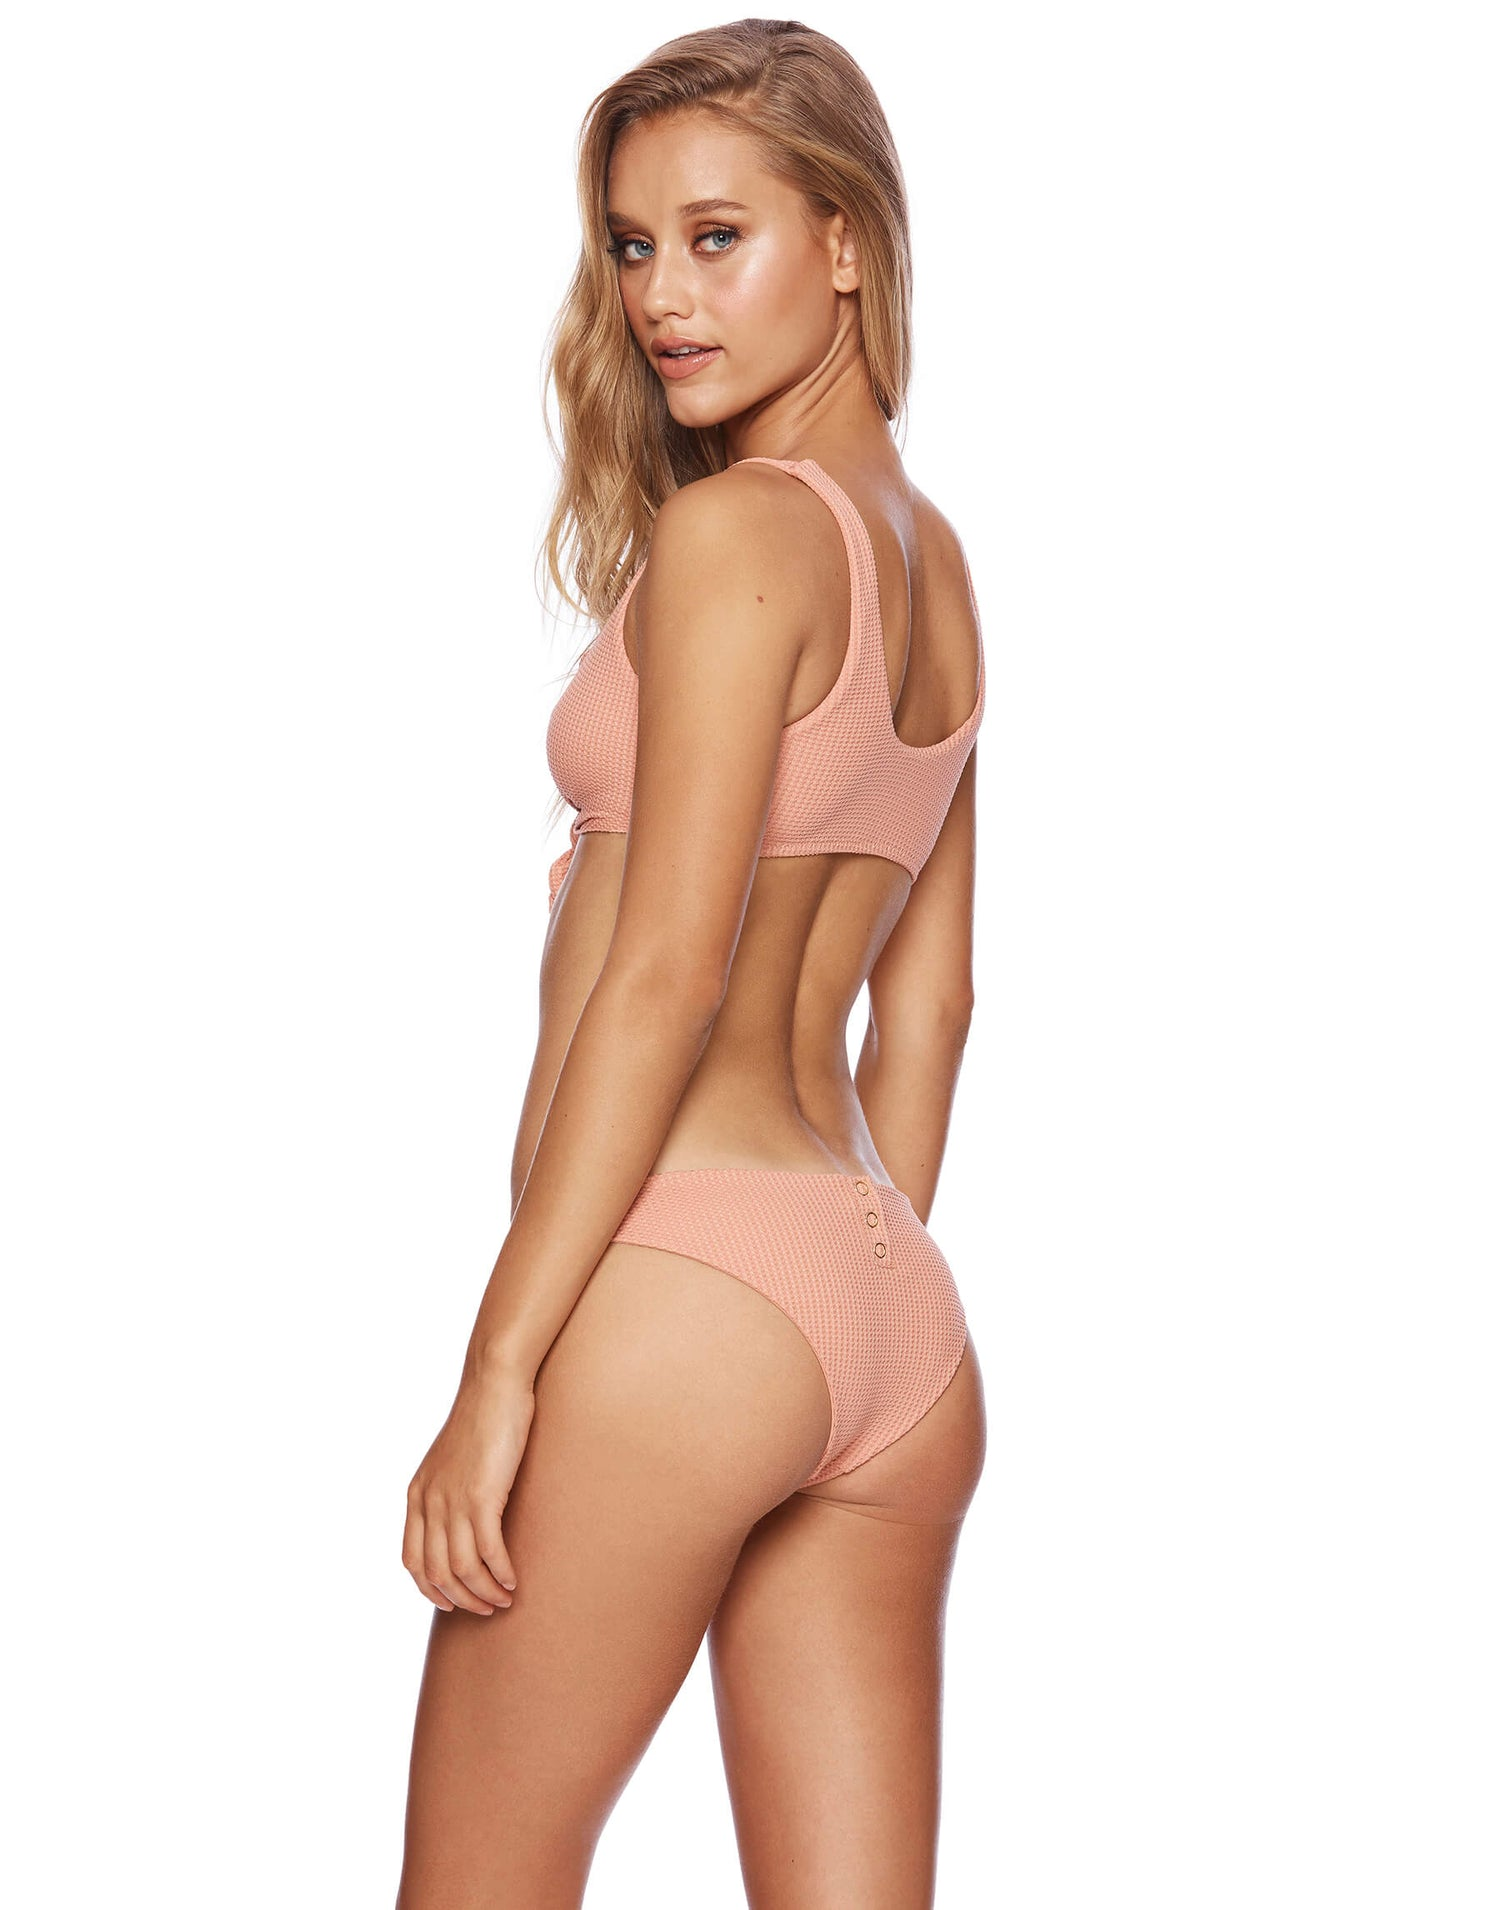 Sage Knot Bikini Top in Whiskey Rose Waffle Texture - back view